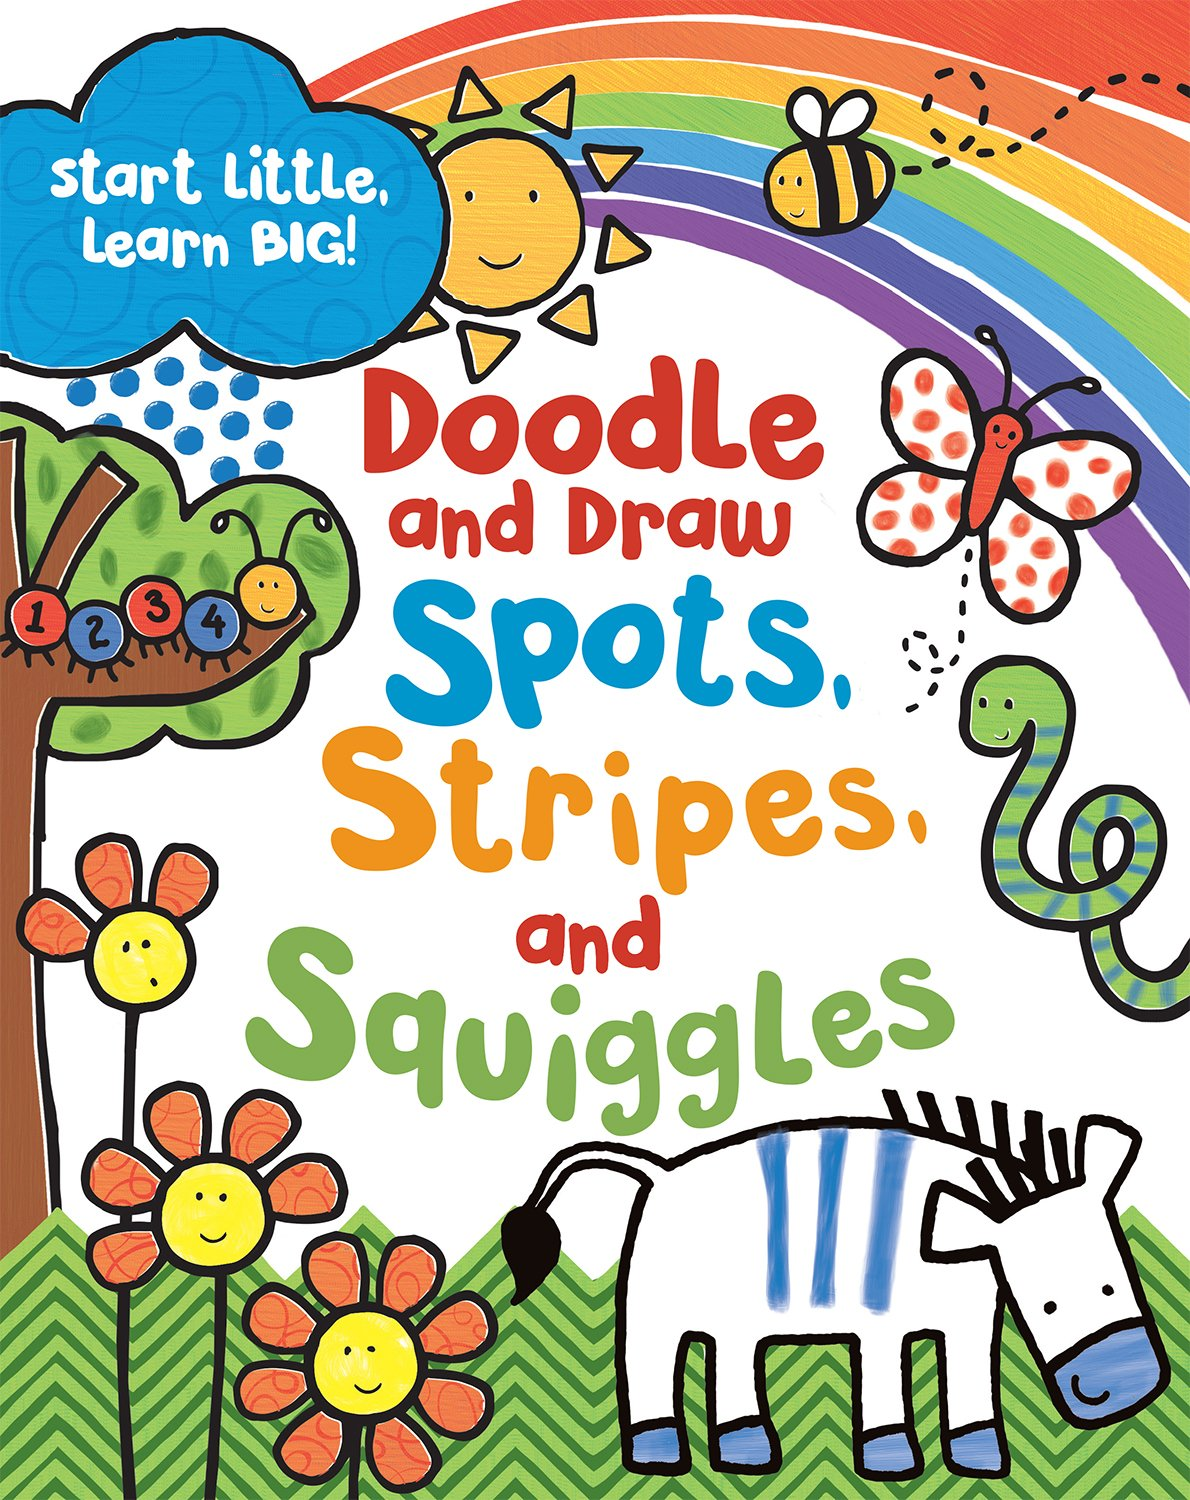 Workbooks squiggle art worksheets : Doodle and Draw Spots, Stripes and Squiggles (Doodle Books ...